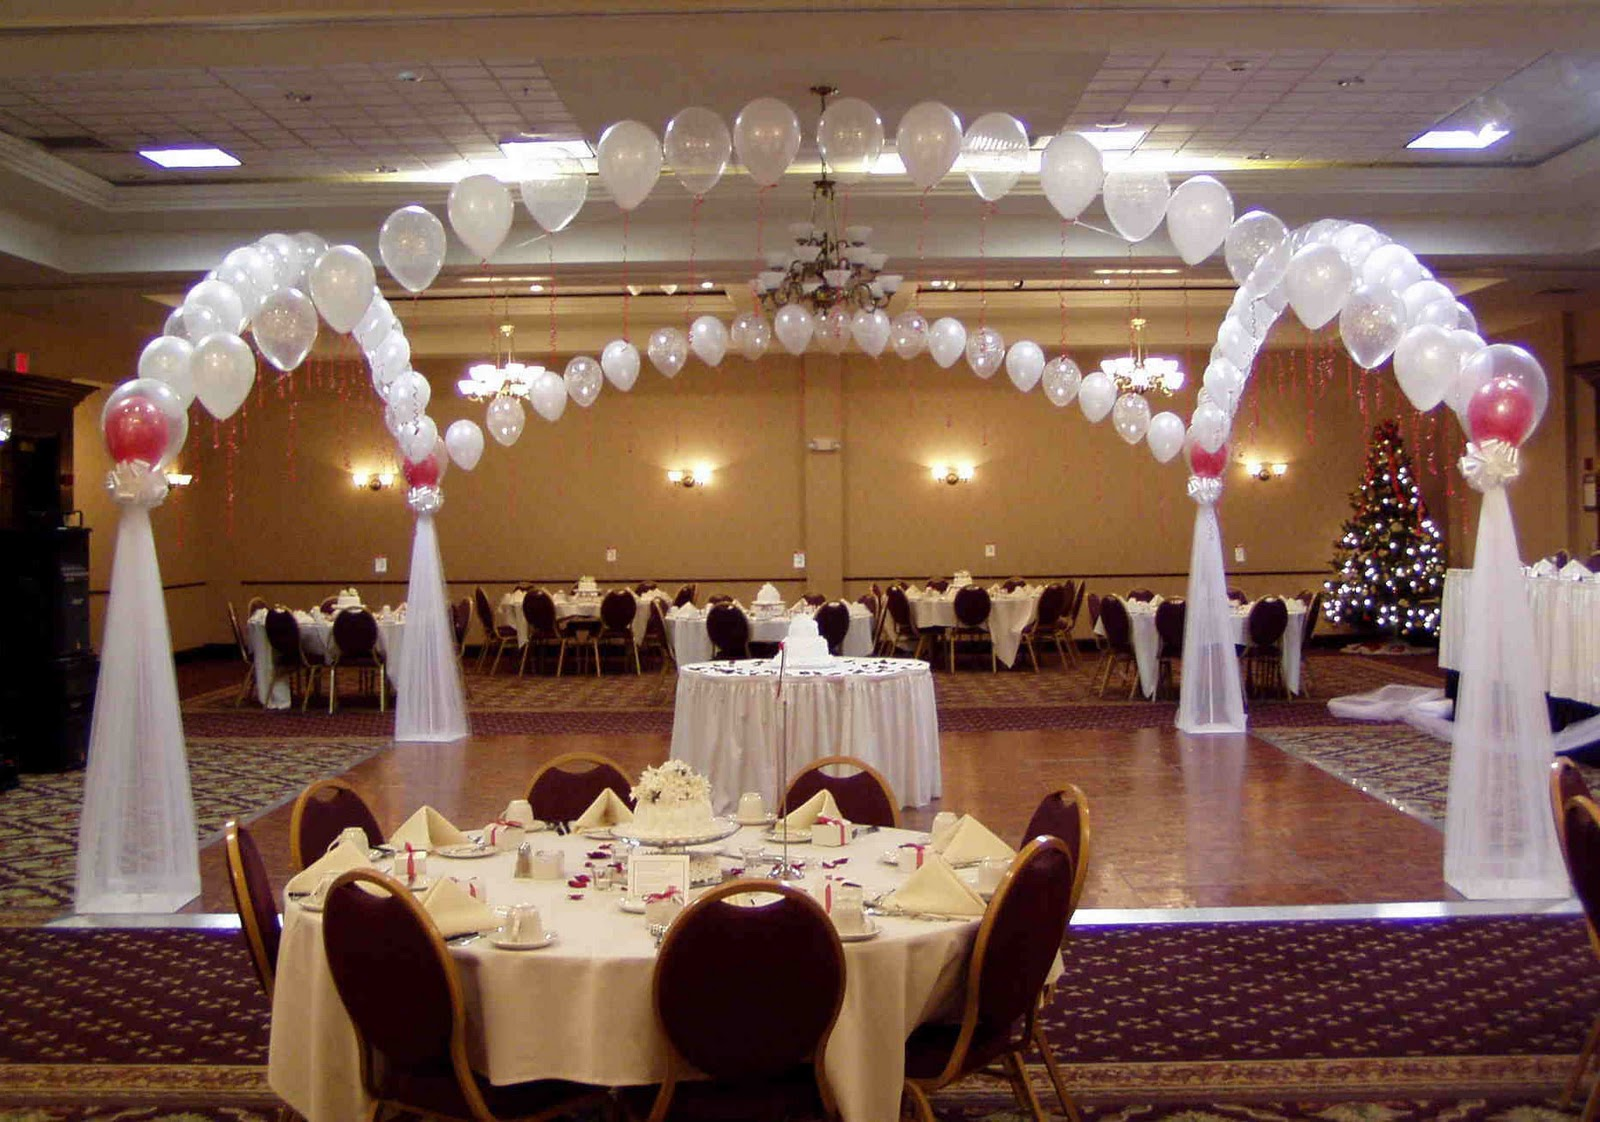 The wedding collections wedding table decorations for Cheap wedding table decorations ideas